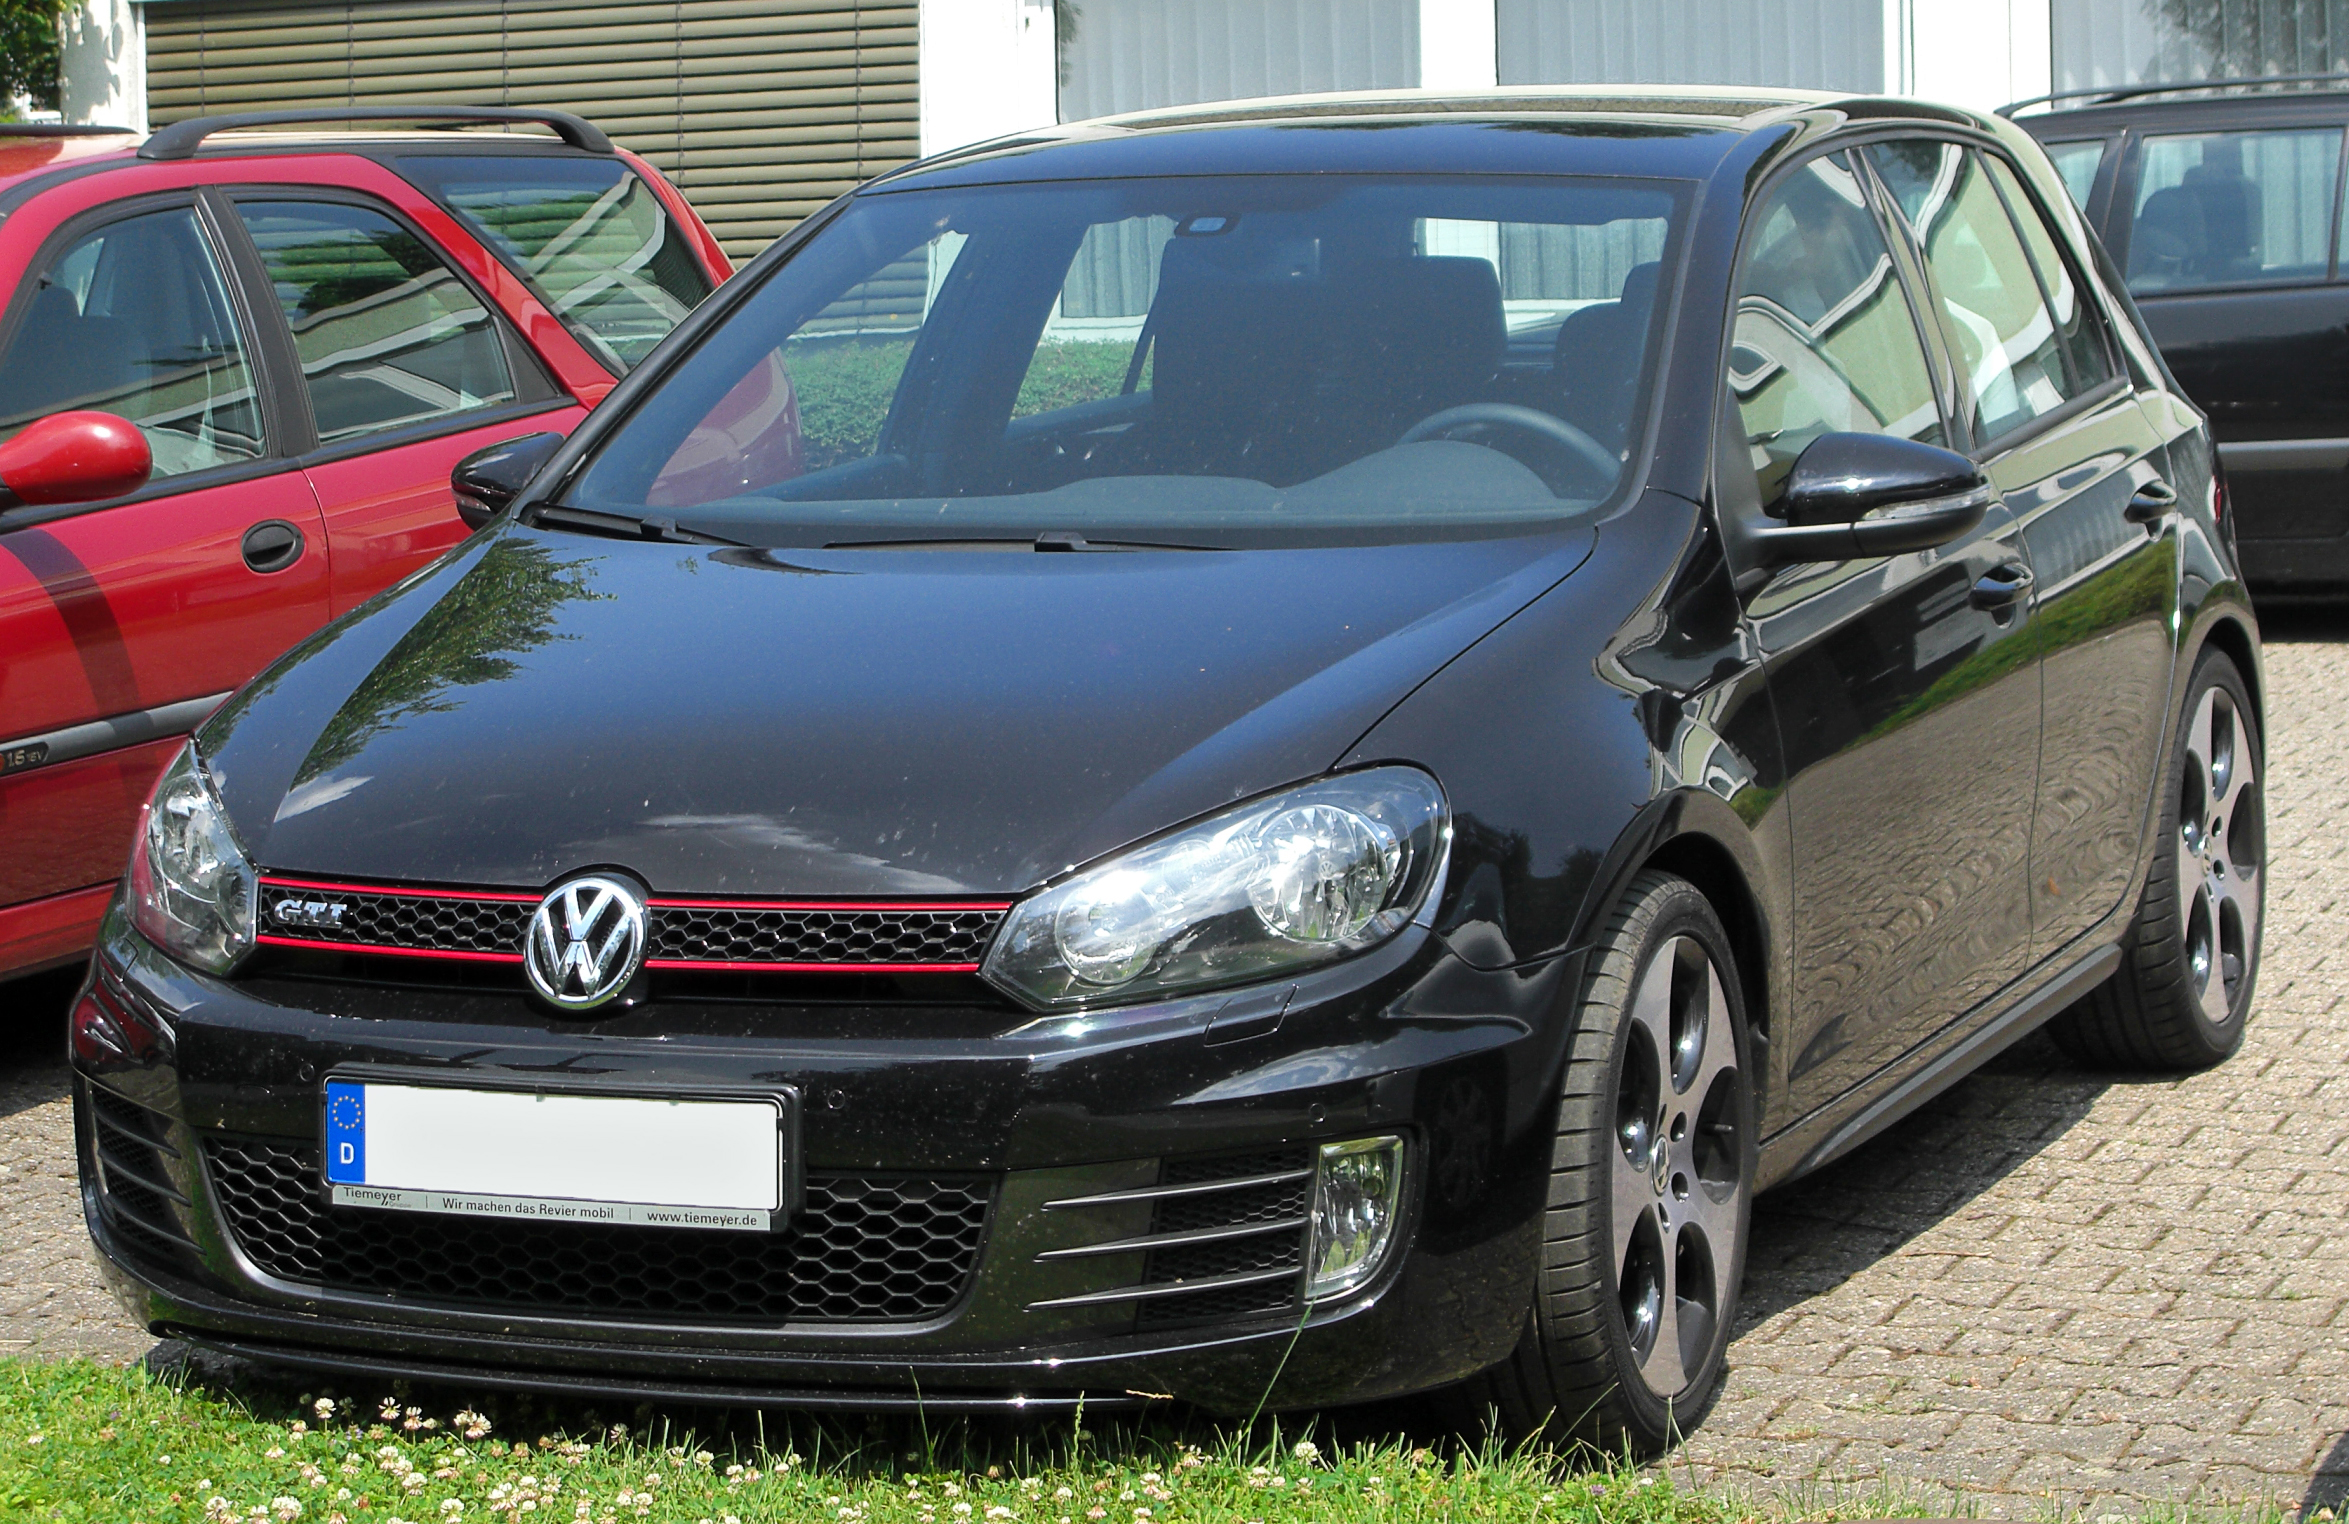 file vw golf vi gti front wikimedia commons. Black Bedroom Furniture Sets. Home Design Ideas